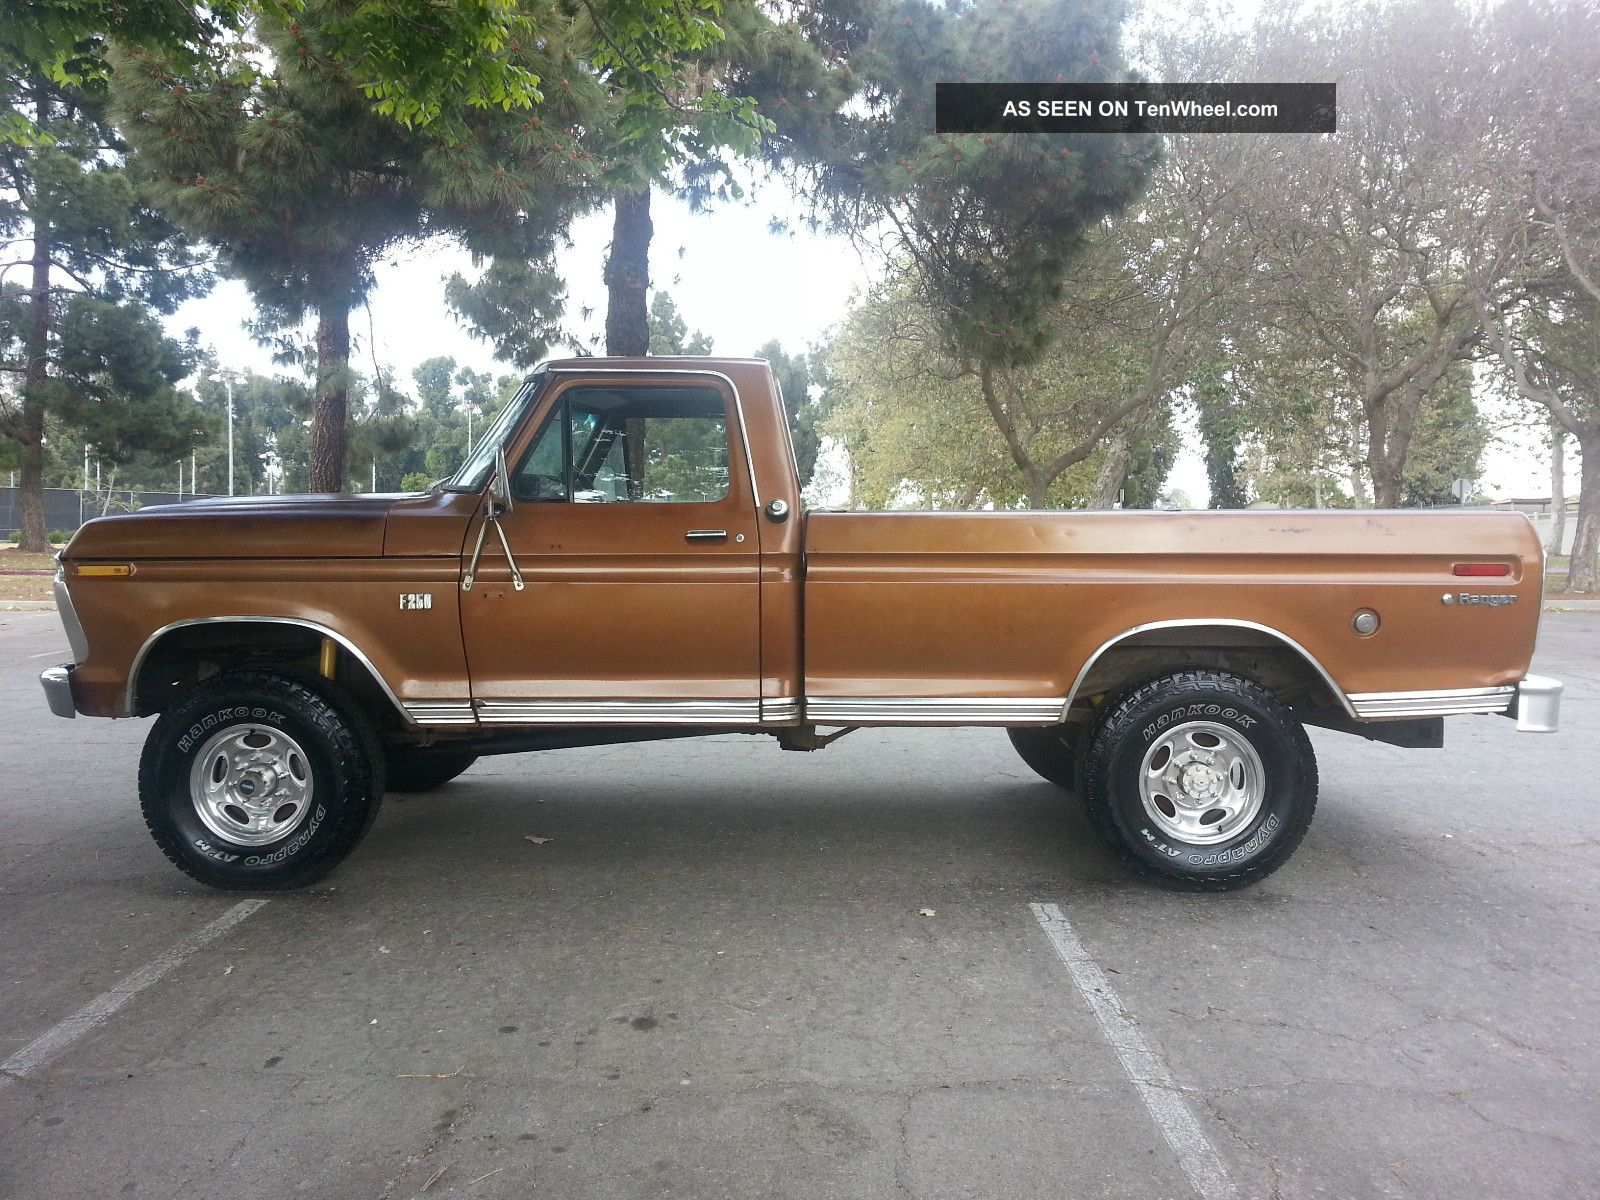 Ford f-250 1974 photo - 4